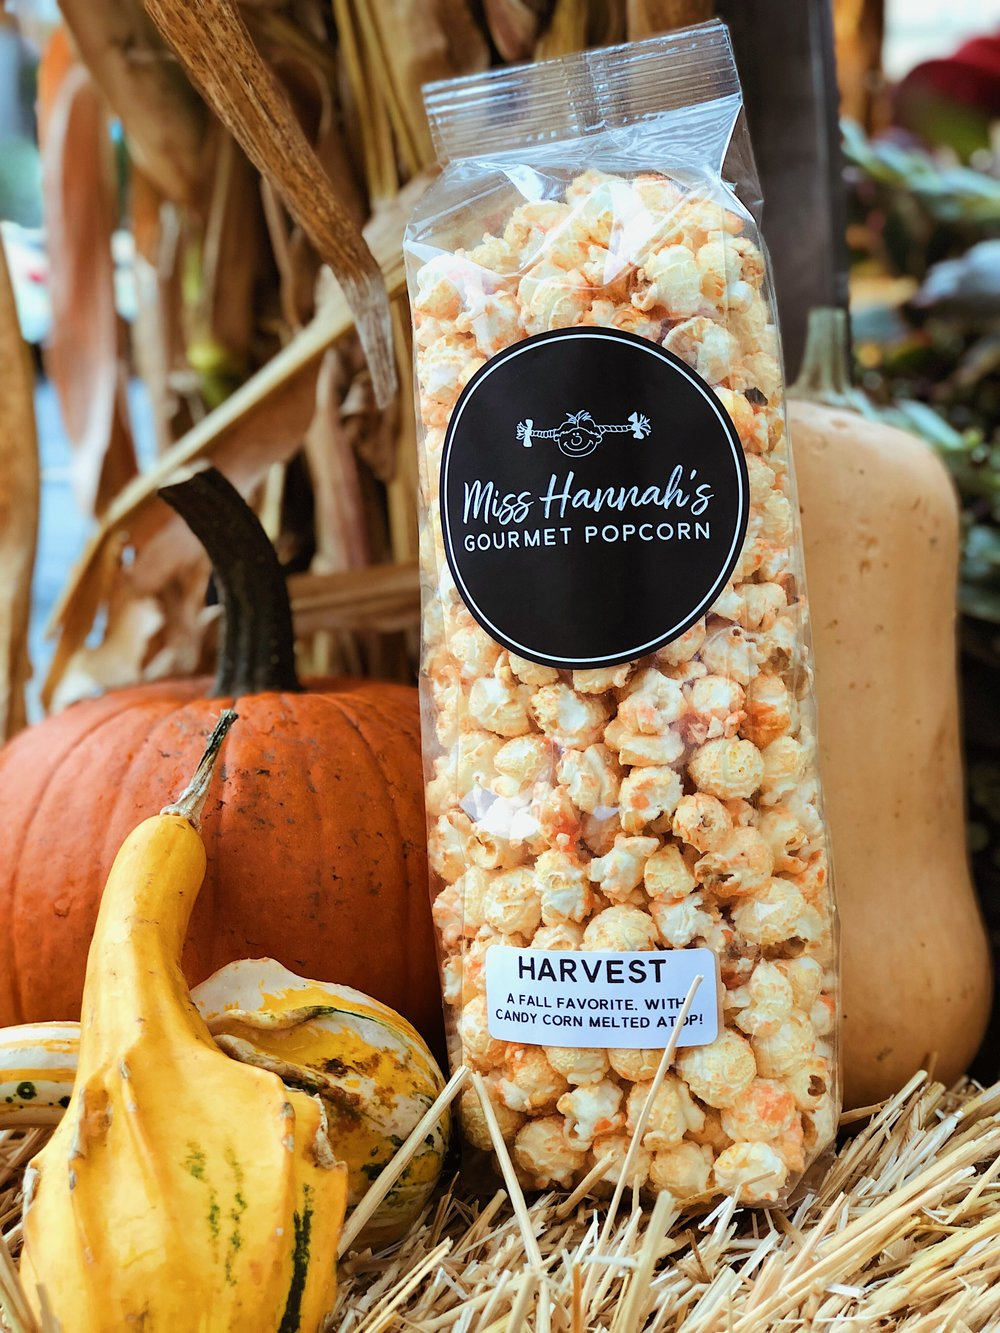 Harvest - A sweet fall treat with real candy corns melted atop, making for a honey flavored delight.Available in OctoberDairy & Gluten FreeContains Gelatin